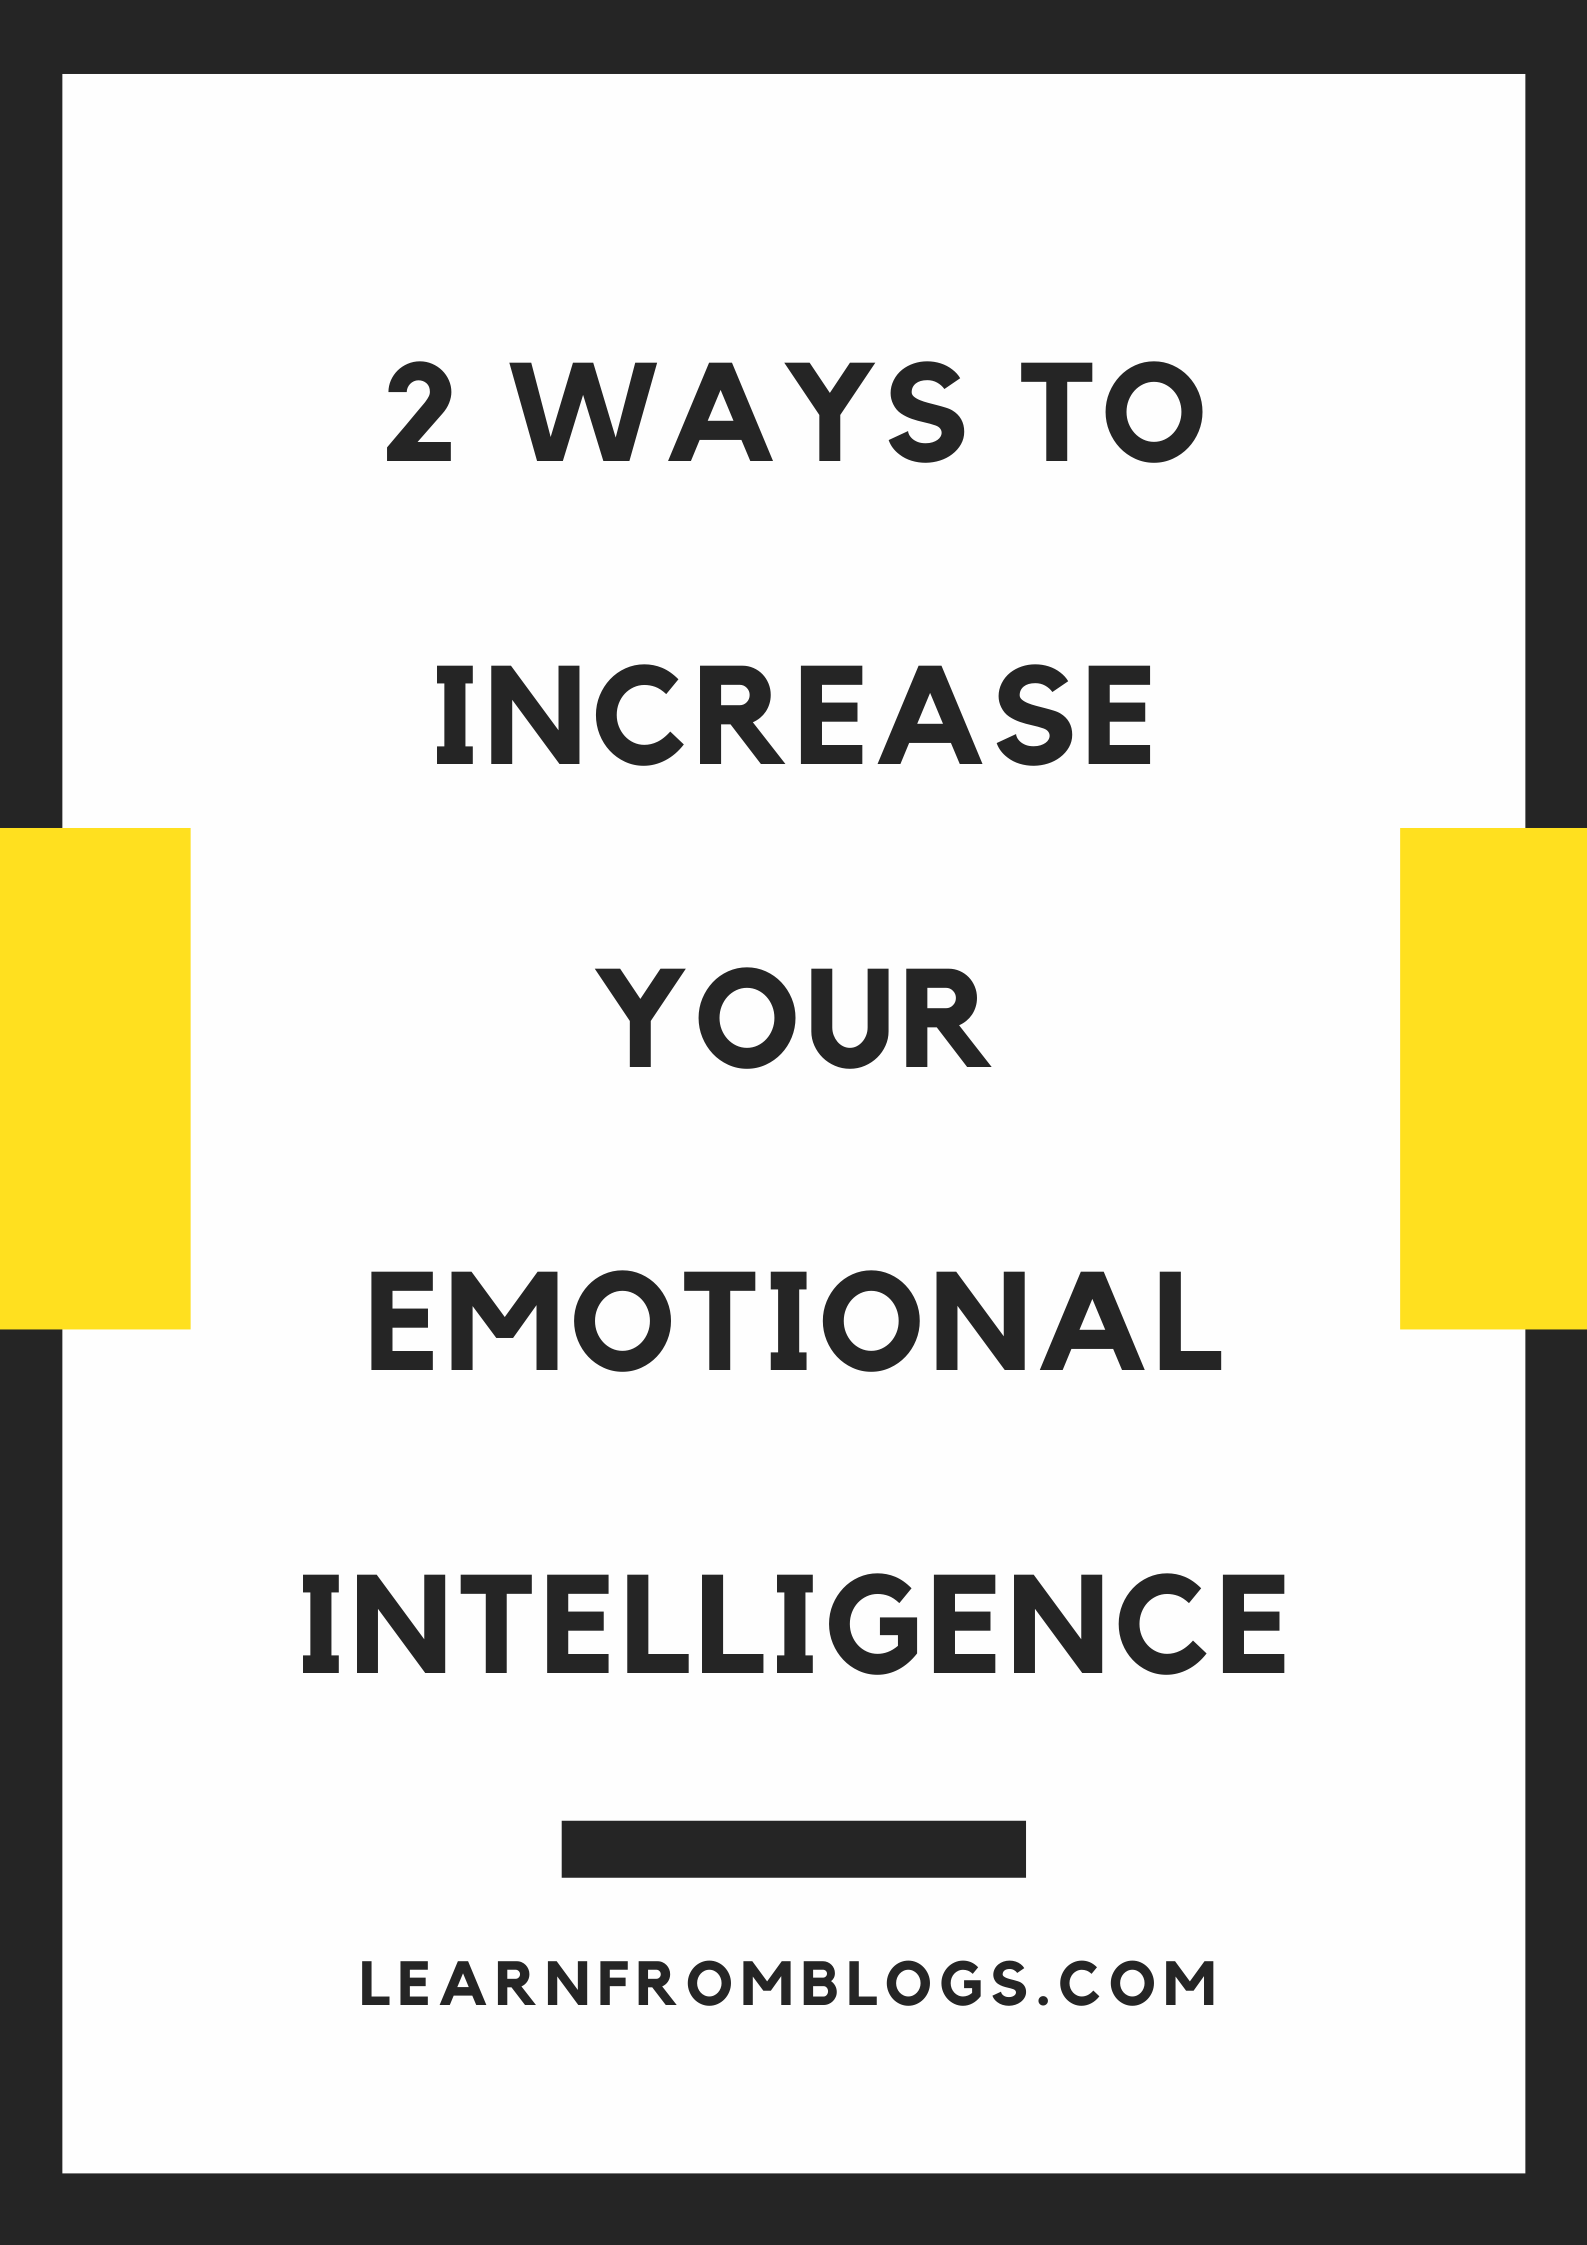 2 Ways To Increase Your Emotional Intelligence.png